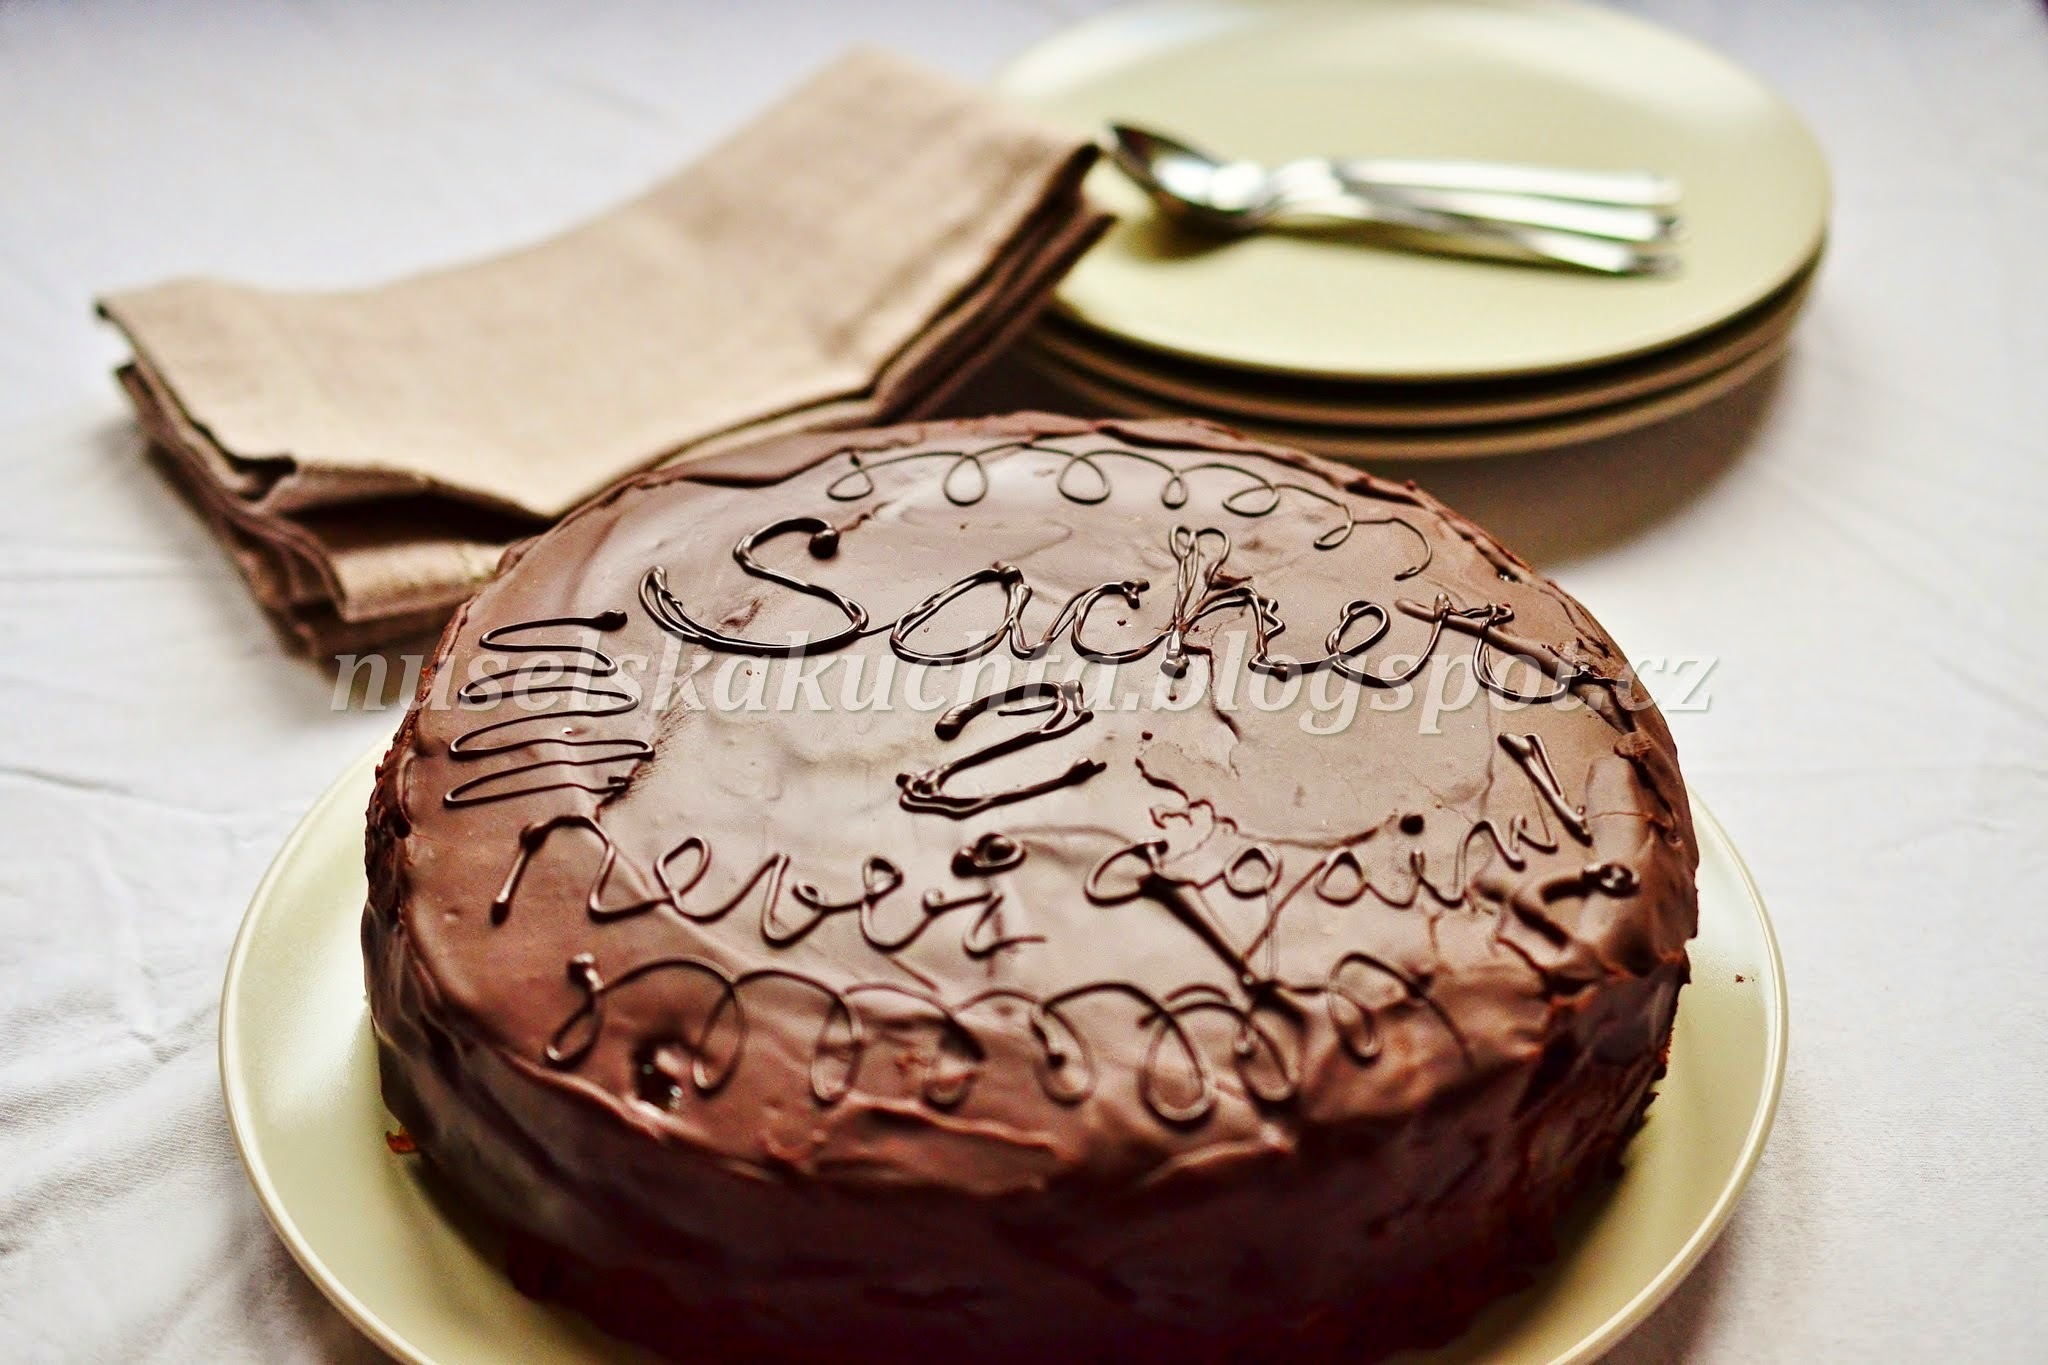 THE DARING BAKERS' CHALLENGE OCTOBER 2014 - SACHER DORT